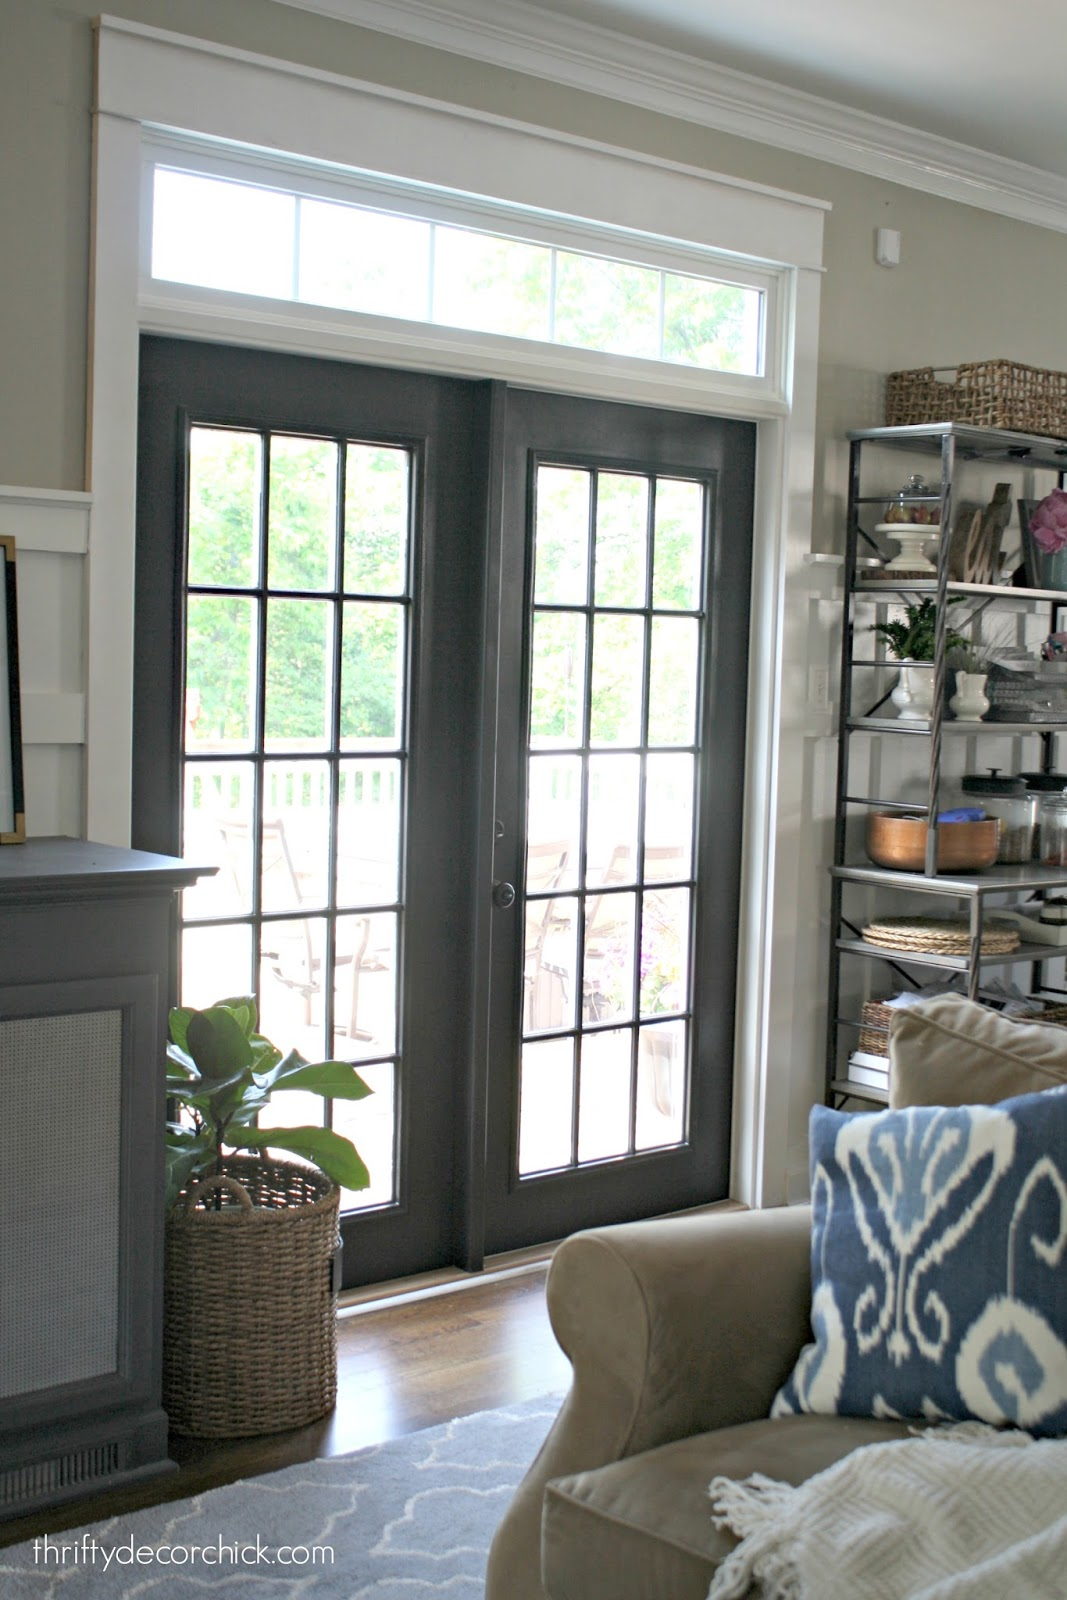 Adding Grids To Windows The Curse Of The Back Door From Thrifty Decor Chick